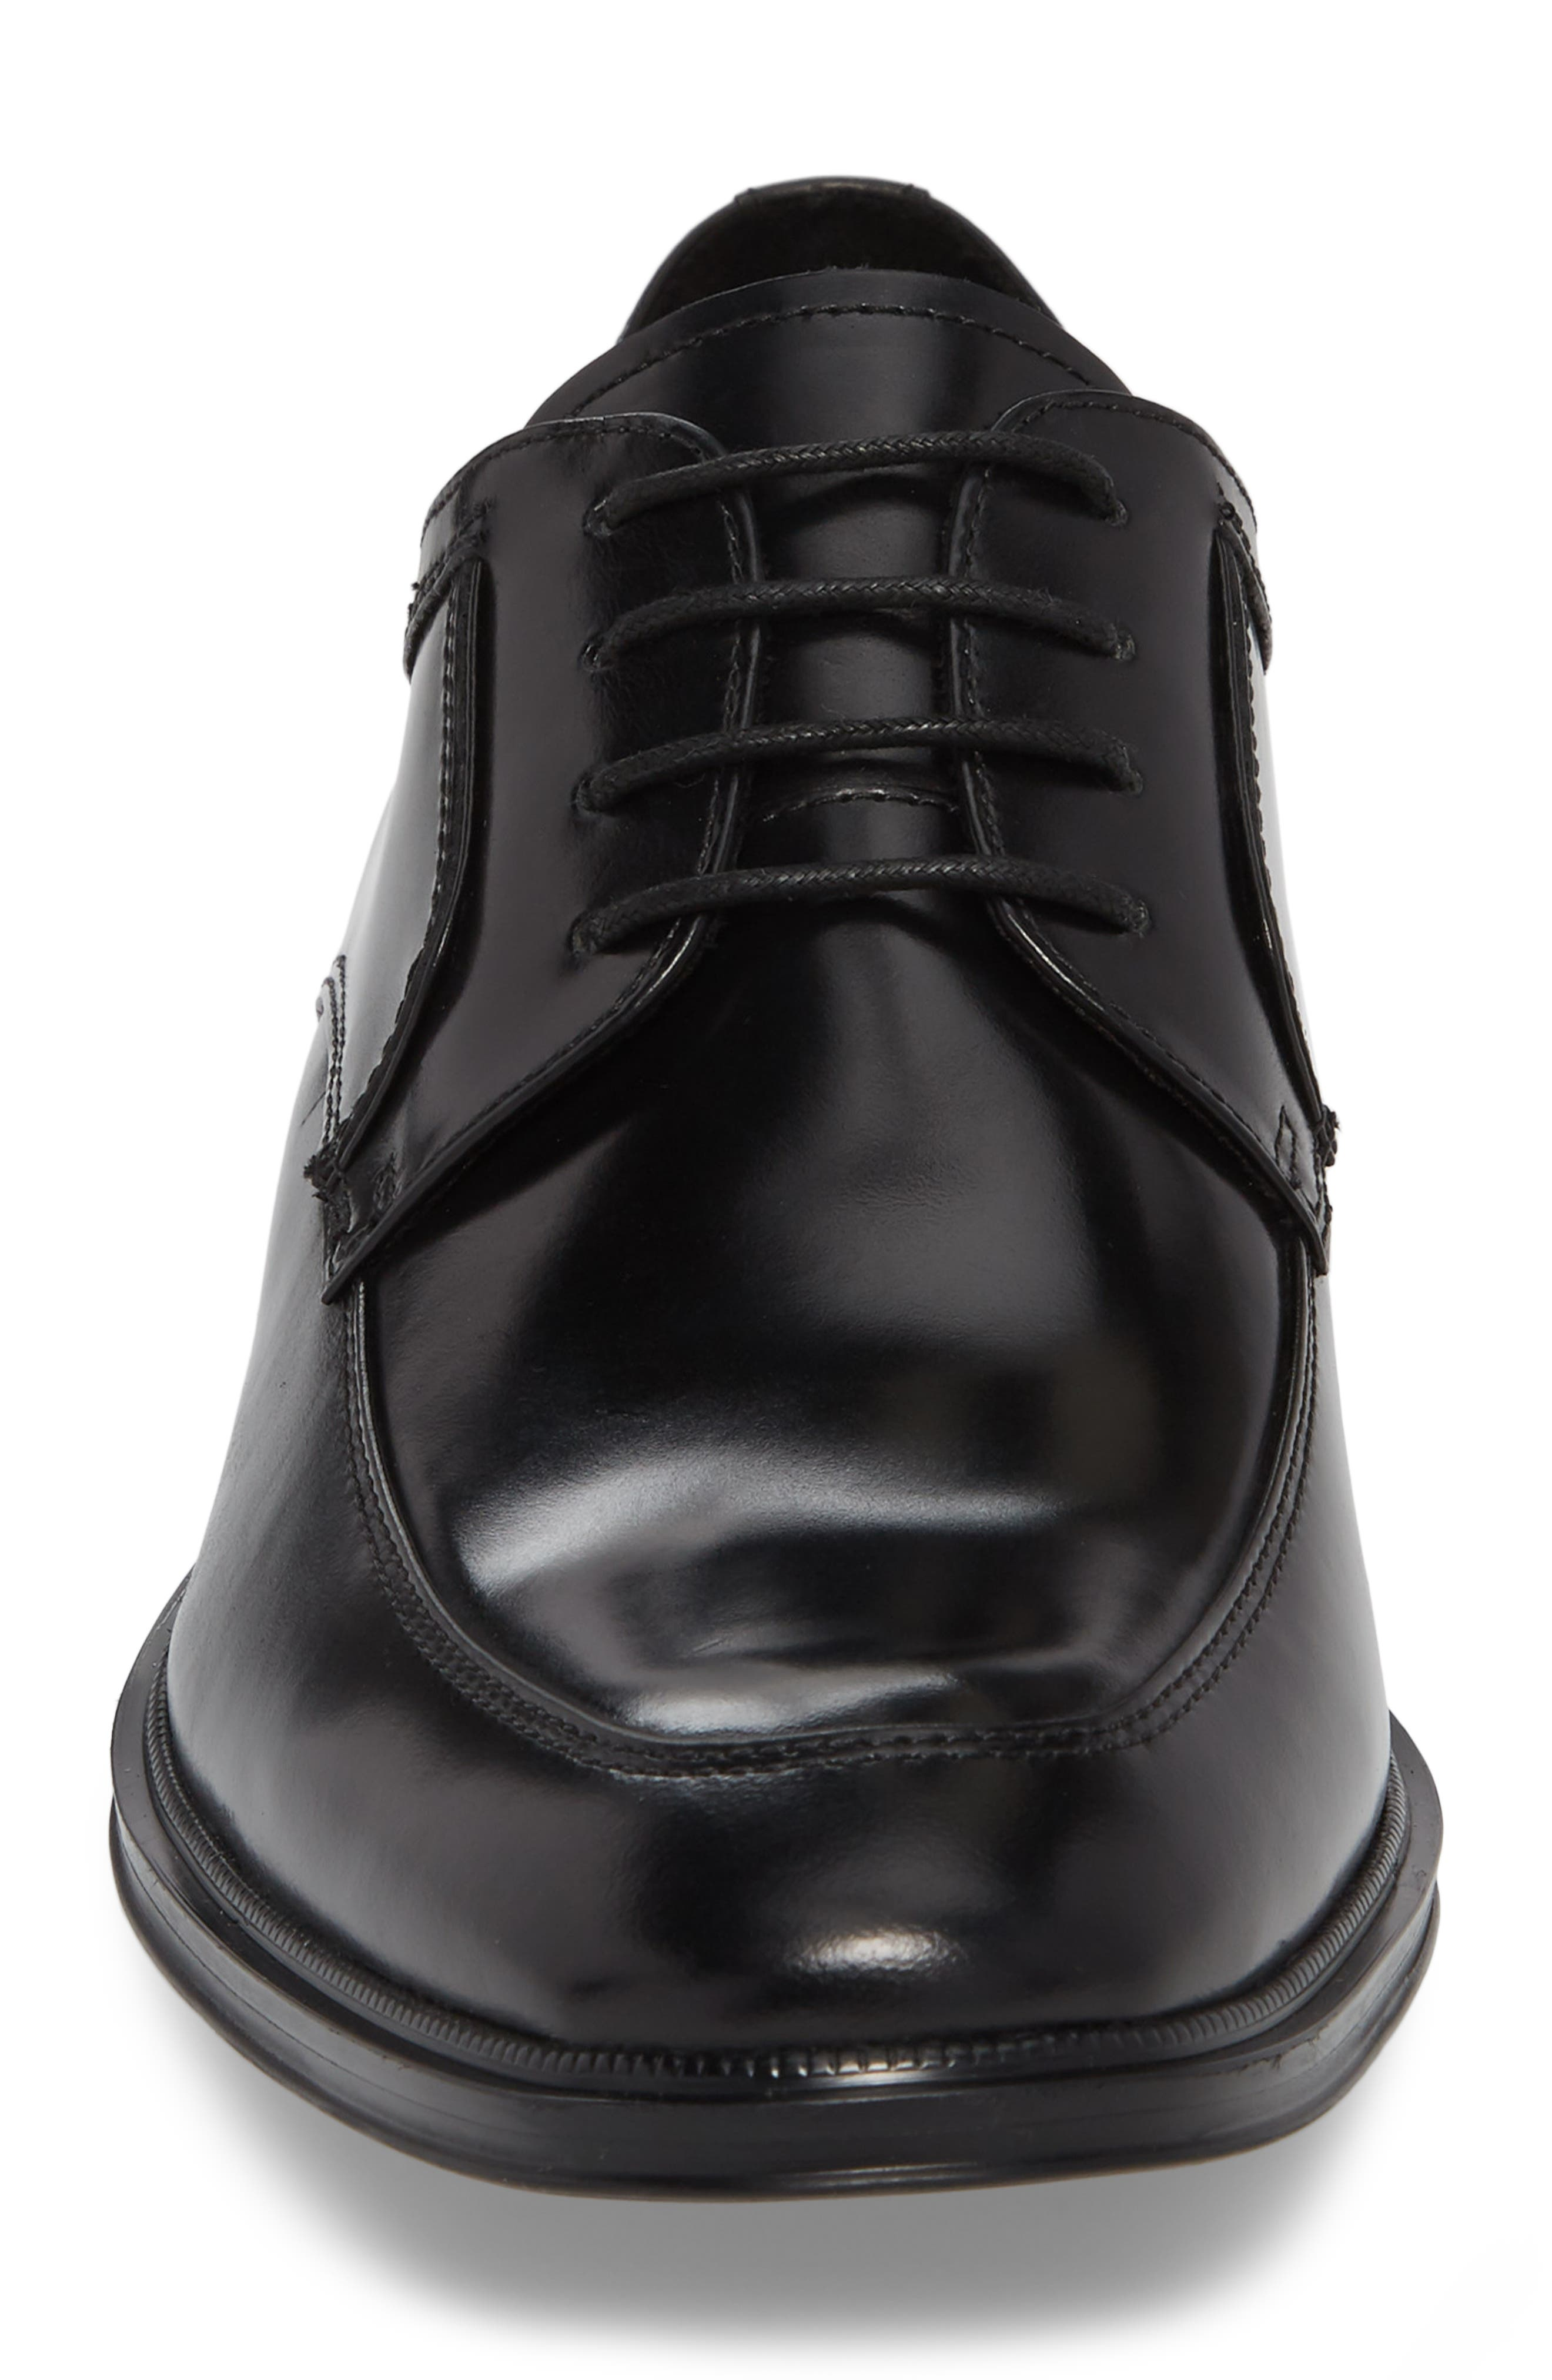 Tully Apron Toe Derby,                             Alternate thumbnail 4, color,                             BLACK LEATHER